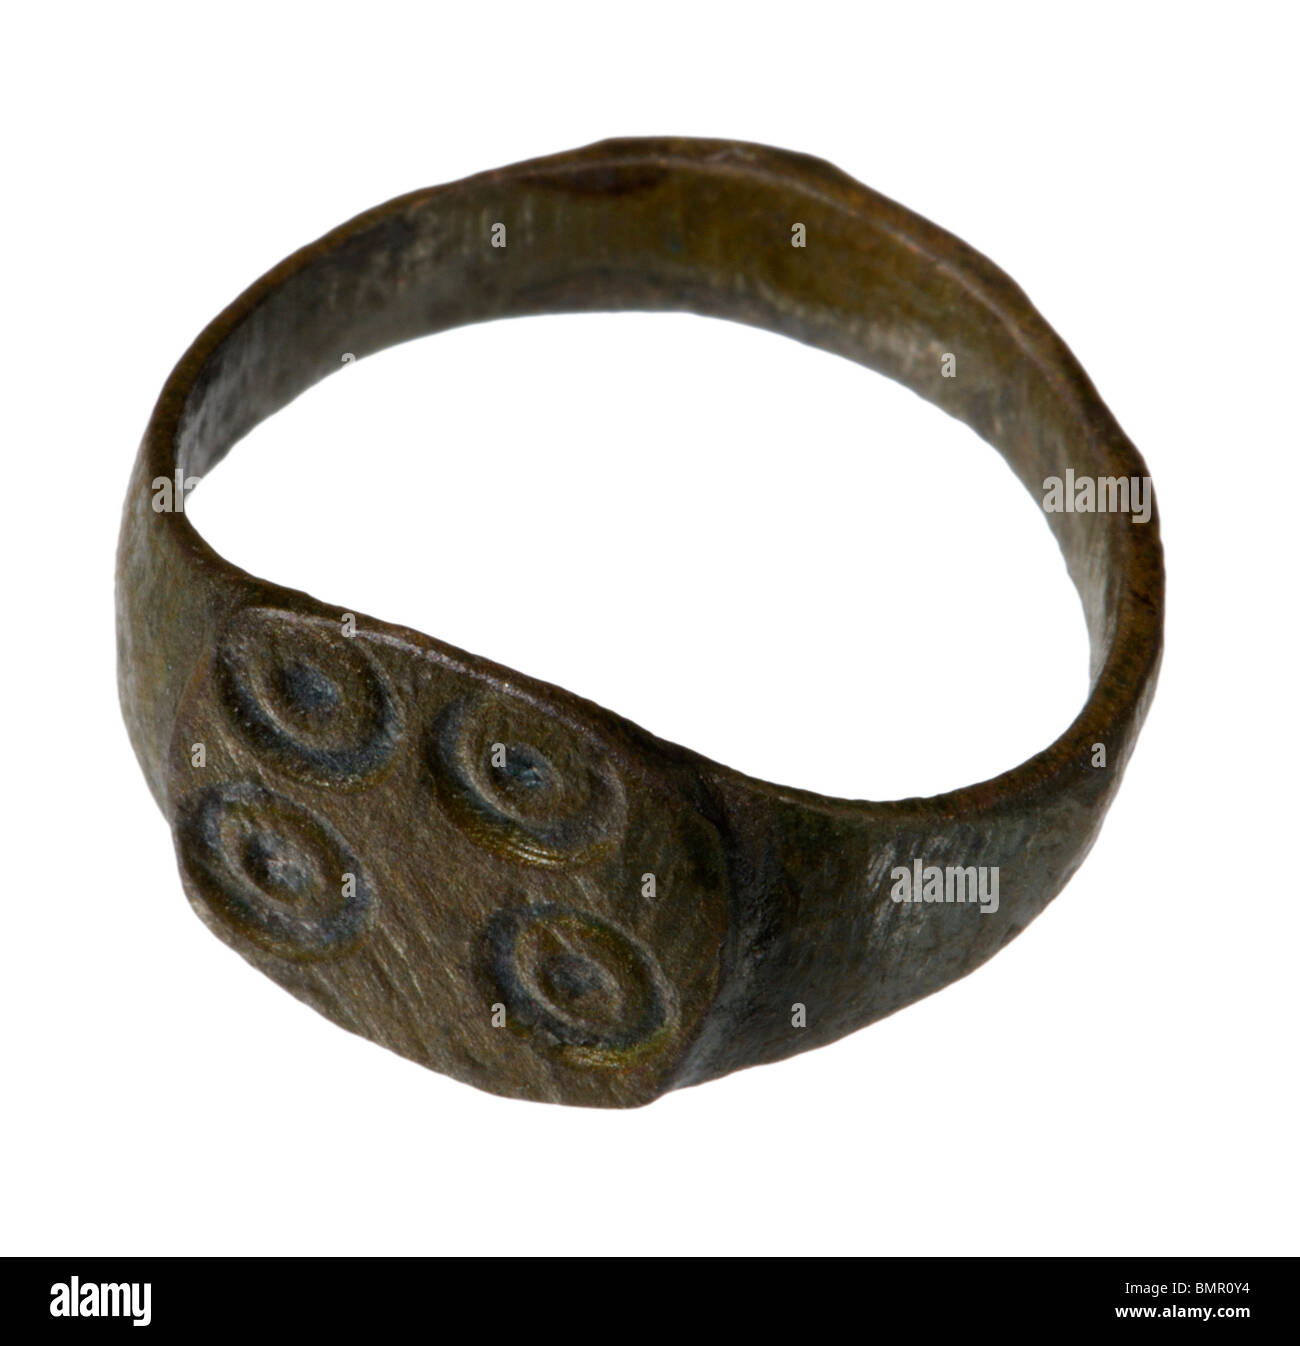 Ancient Roman Rings ancient roman bronze ring stock photo: 30009144 - alamy